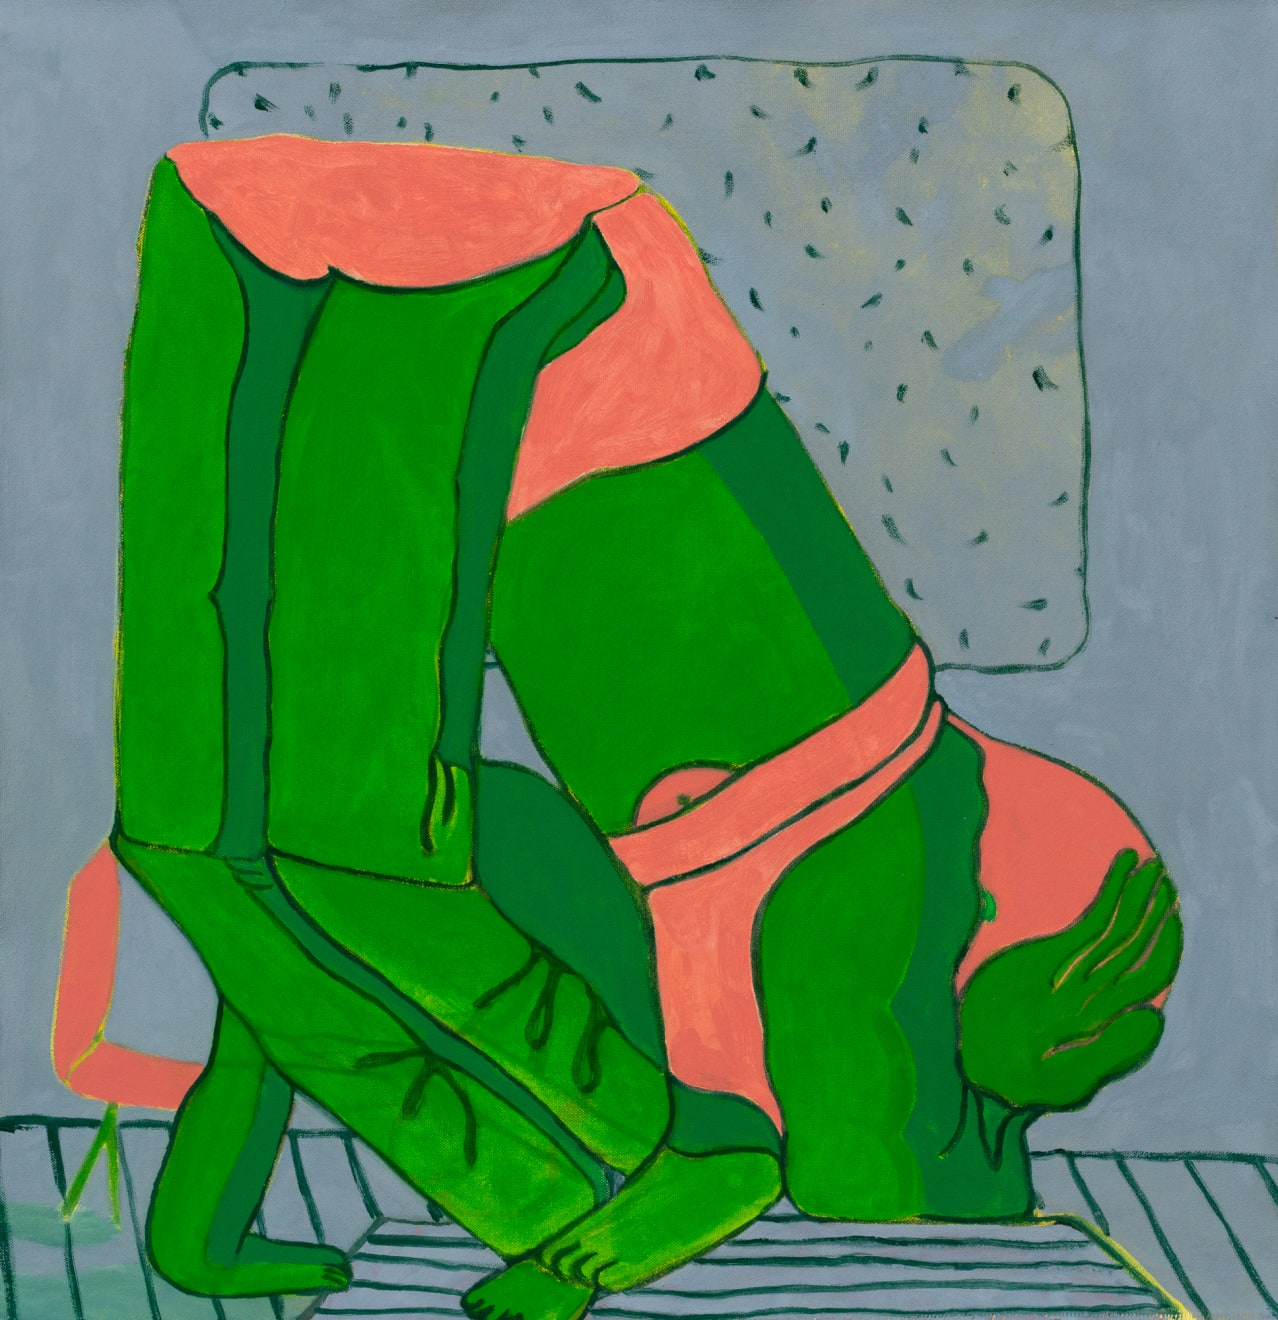 Downward Dispair